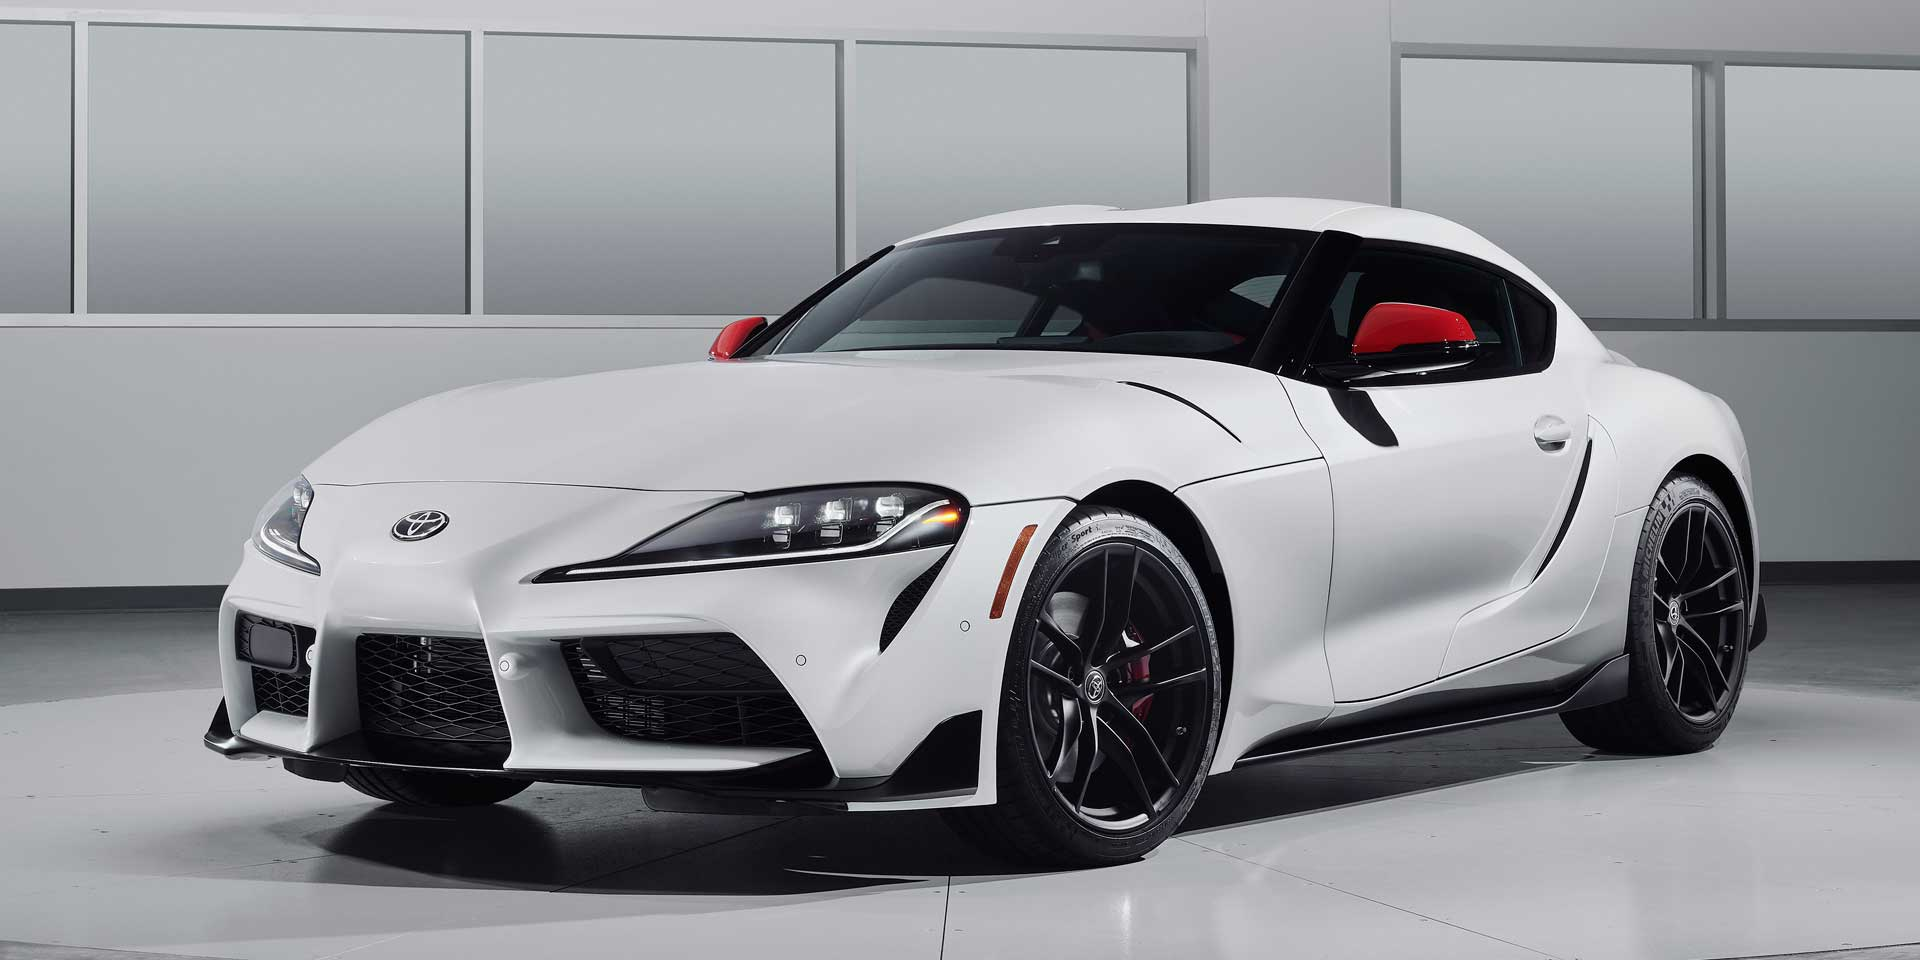 2020 Toyota Supra Vehicles On Display Chicago Auto Show